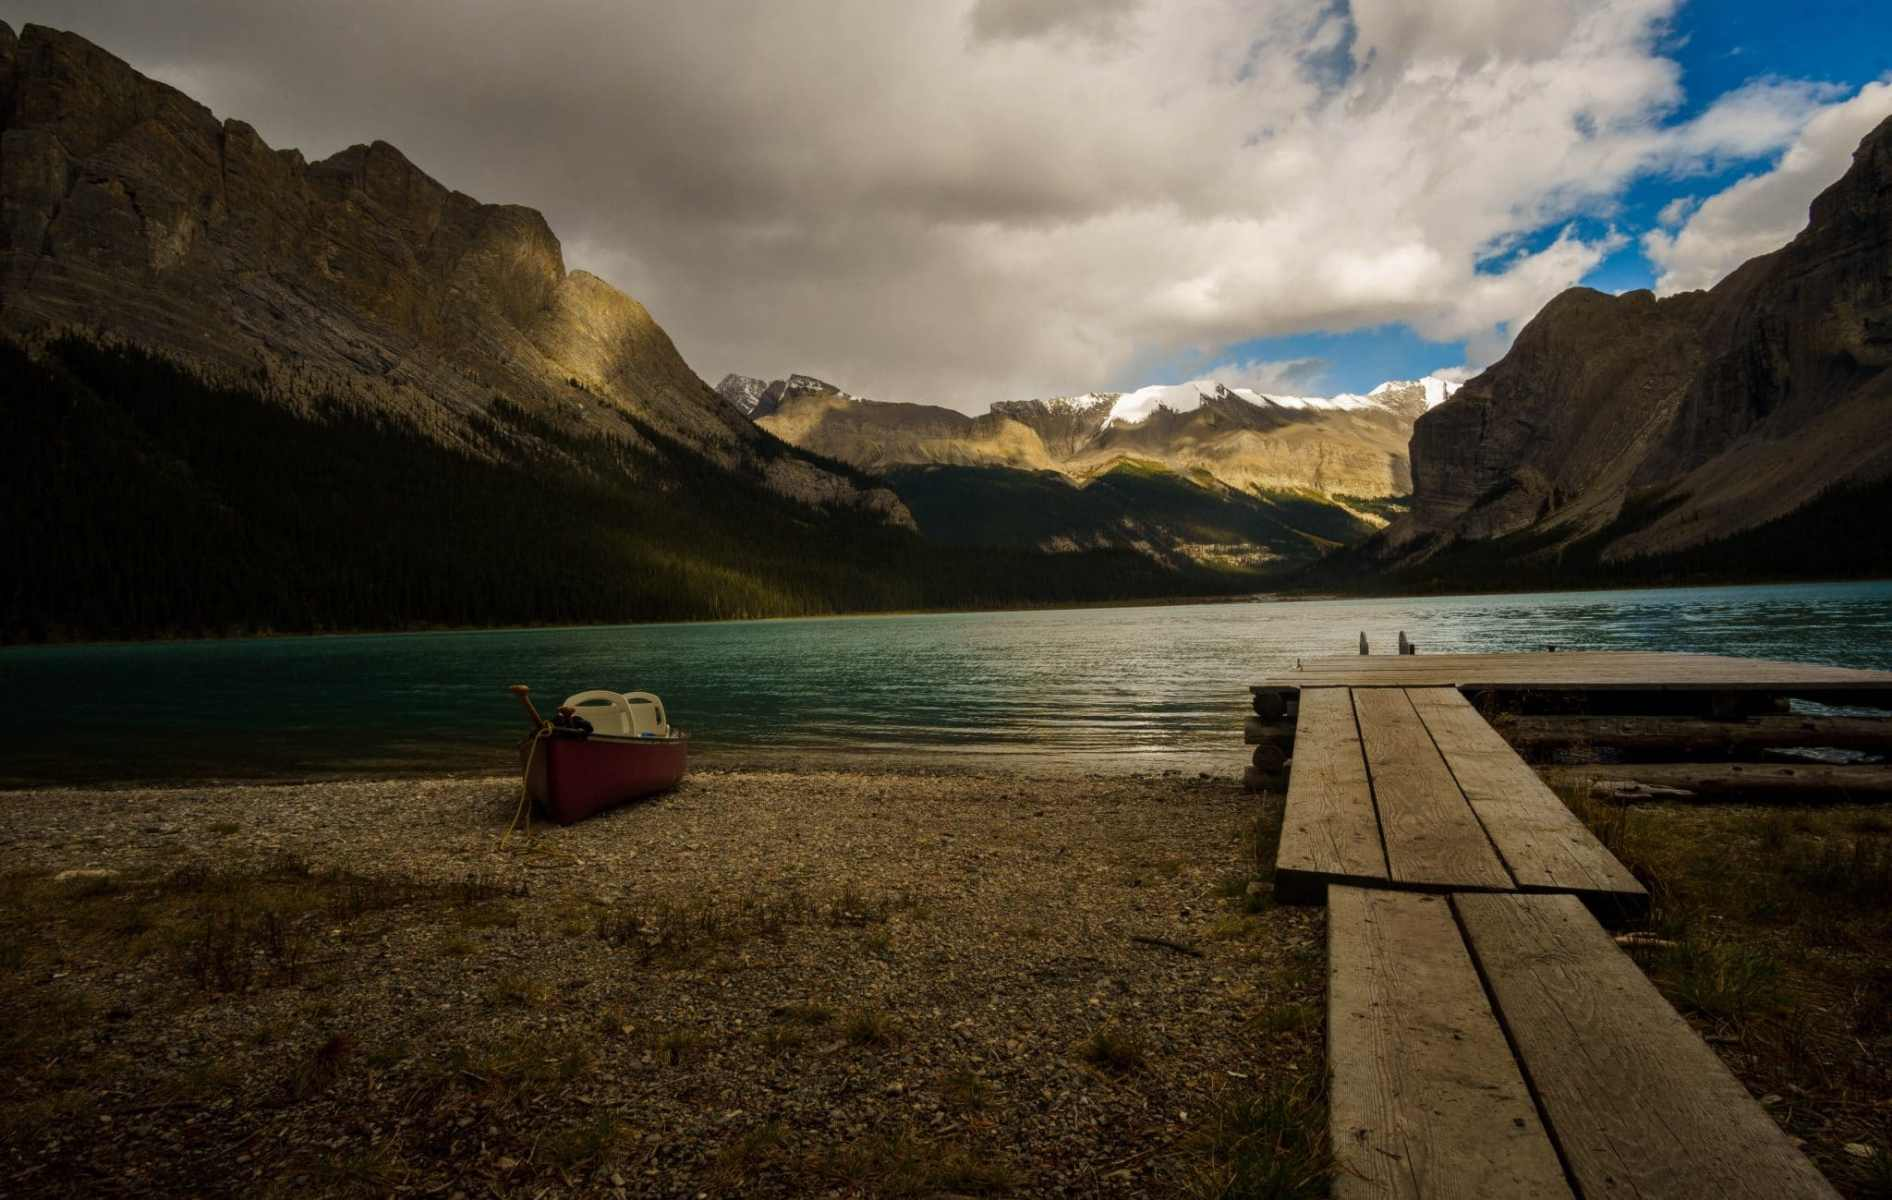 View from Maligne Lake Coronet Campground